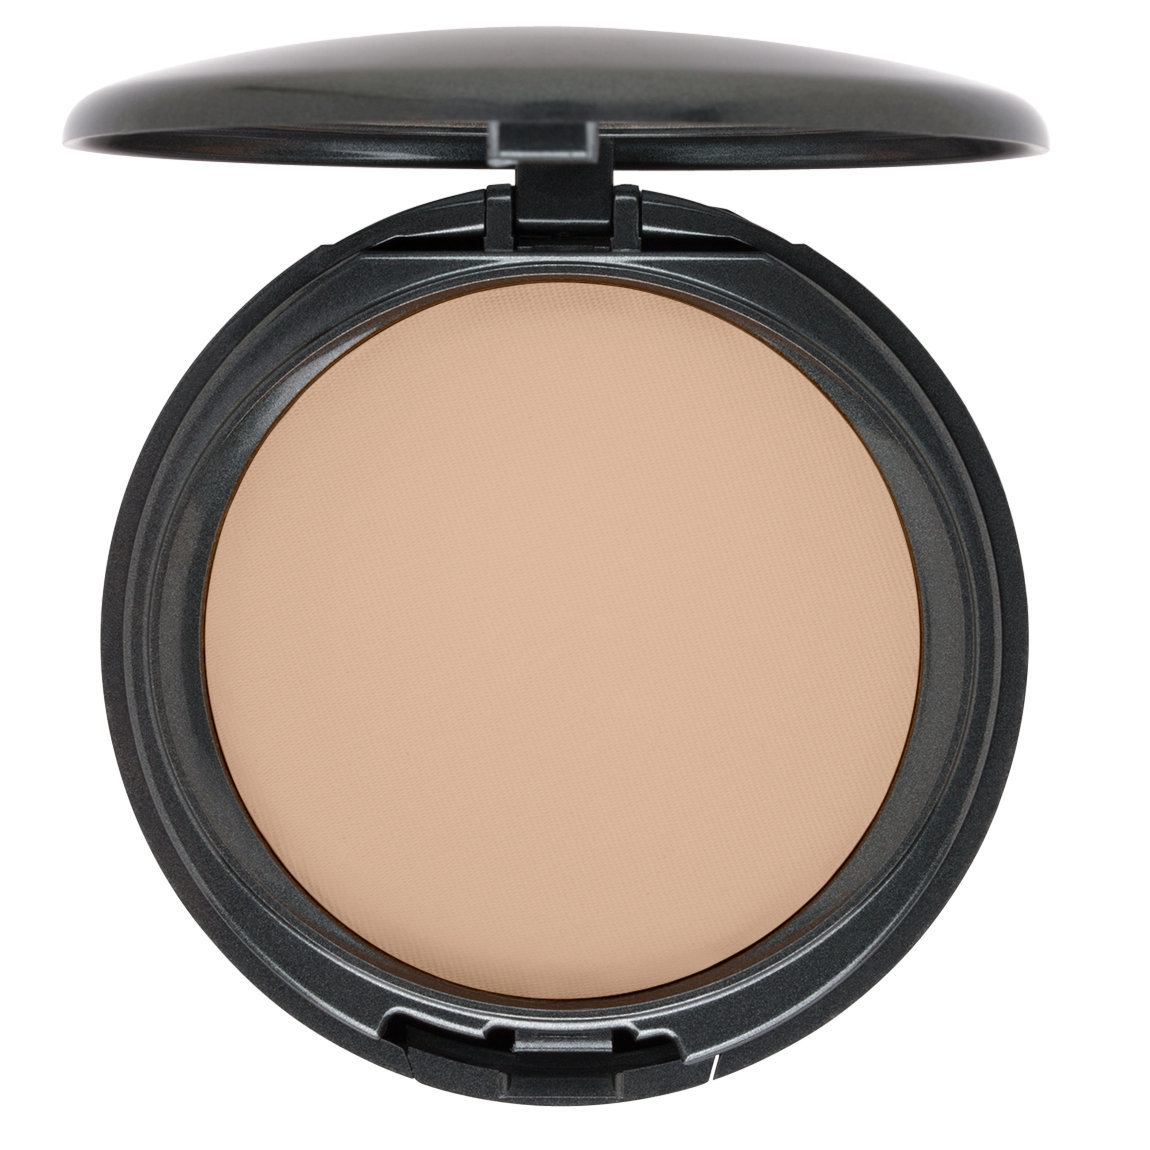 COVER | FX Pressed Mineral Foundation N10 product swatch.